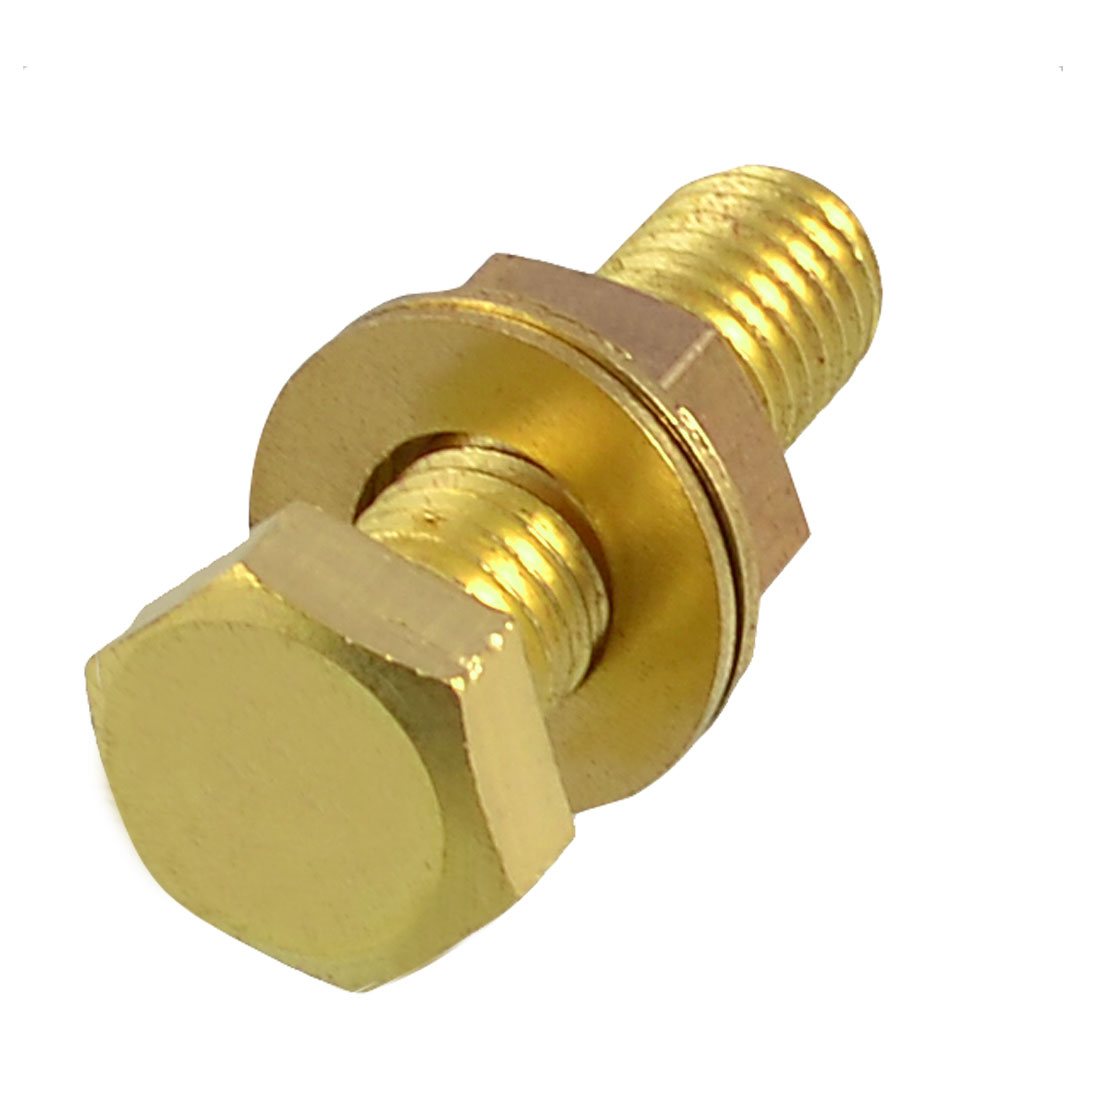 Gold Tone Solid Brass Hex Screw Fastener 12mm x 40mm w Nut Gaskets